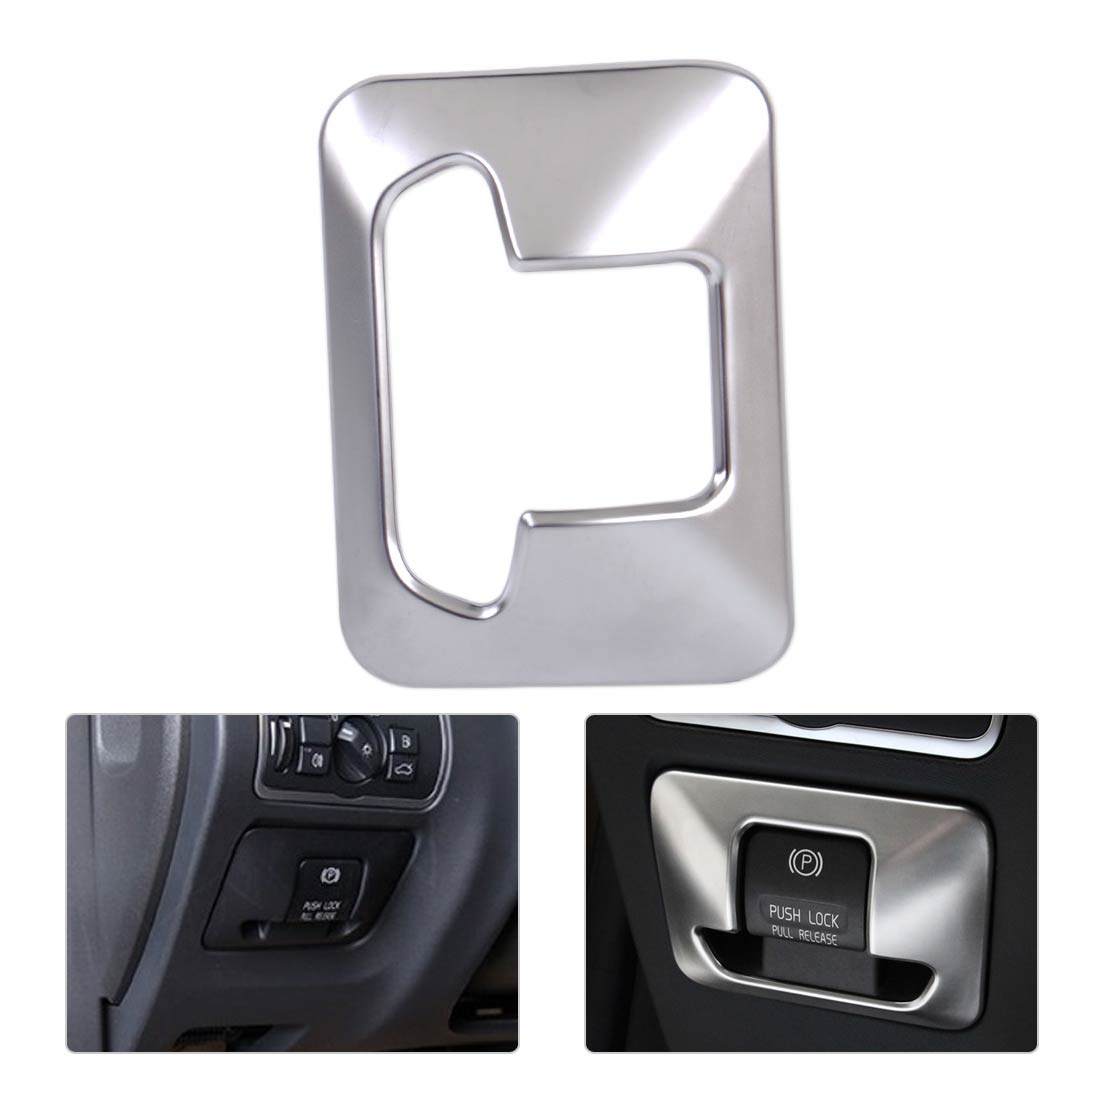 Car Styling Chrome Plated Electronic Handbrake Button Panel Trim Cover fit for Volvo XC60 V60 XC70 S60 S80 2010 - 2013 2014 2015